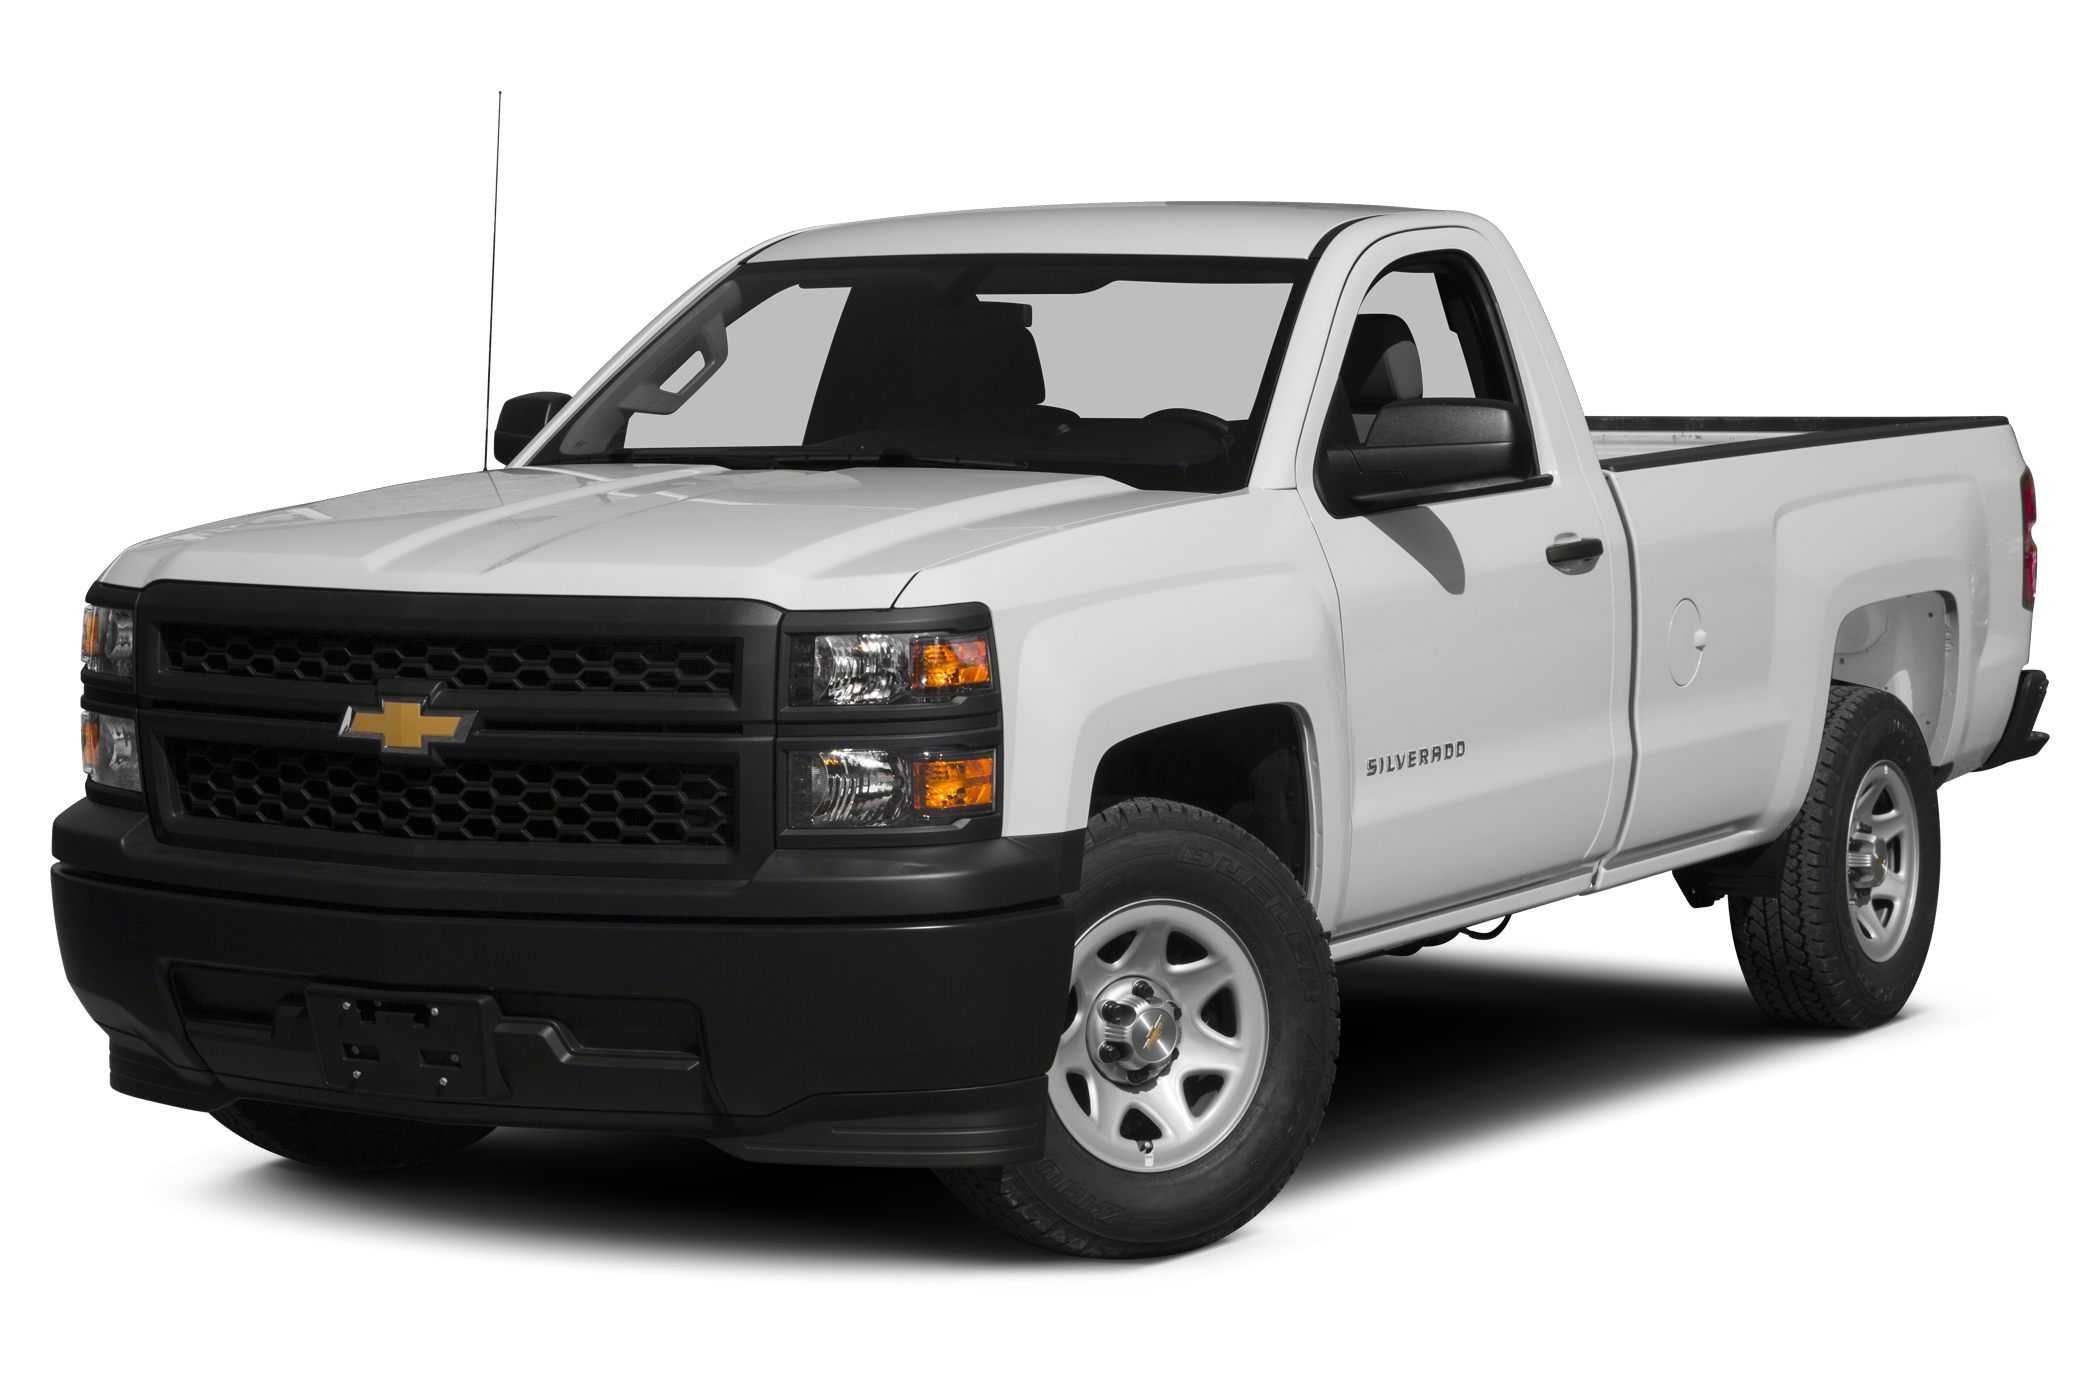 2015 Chevrolet Silverado 1500 1LT Crew Cab Pickup for sale in Cairo for $45,695 with 0 miles